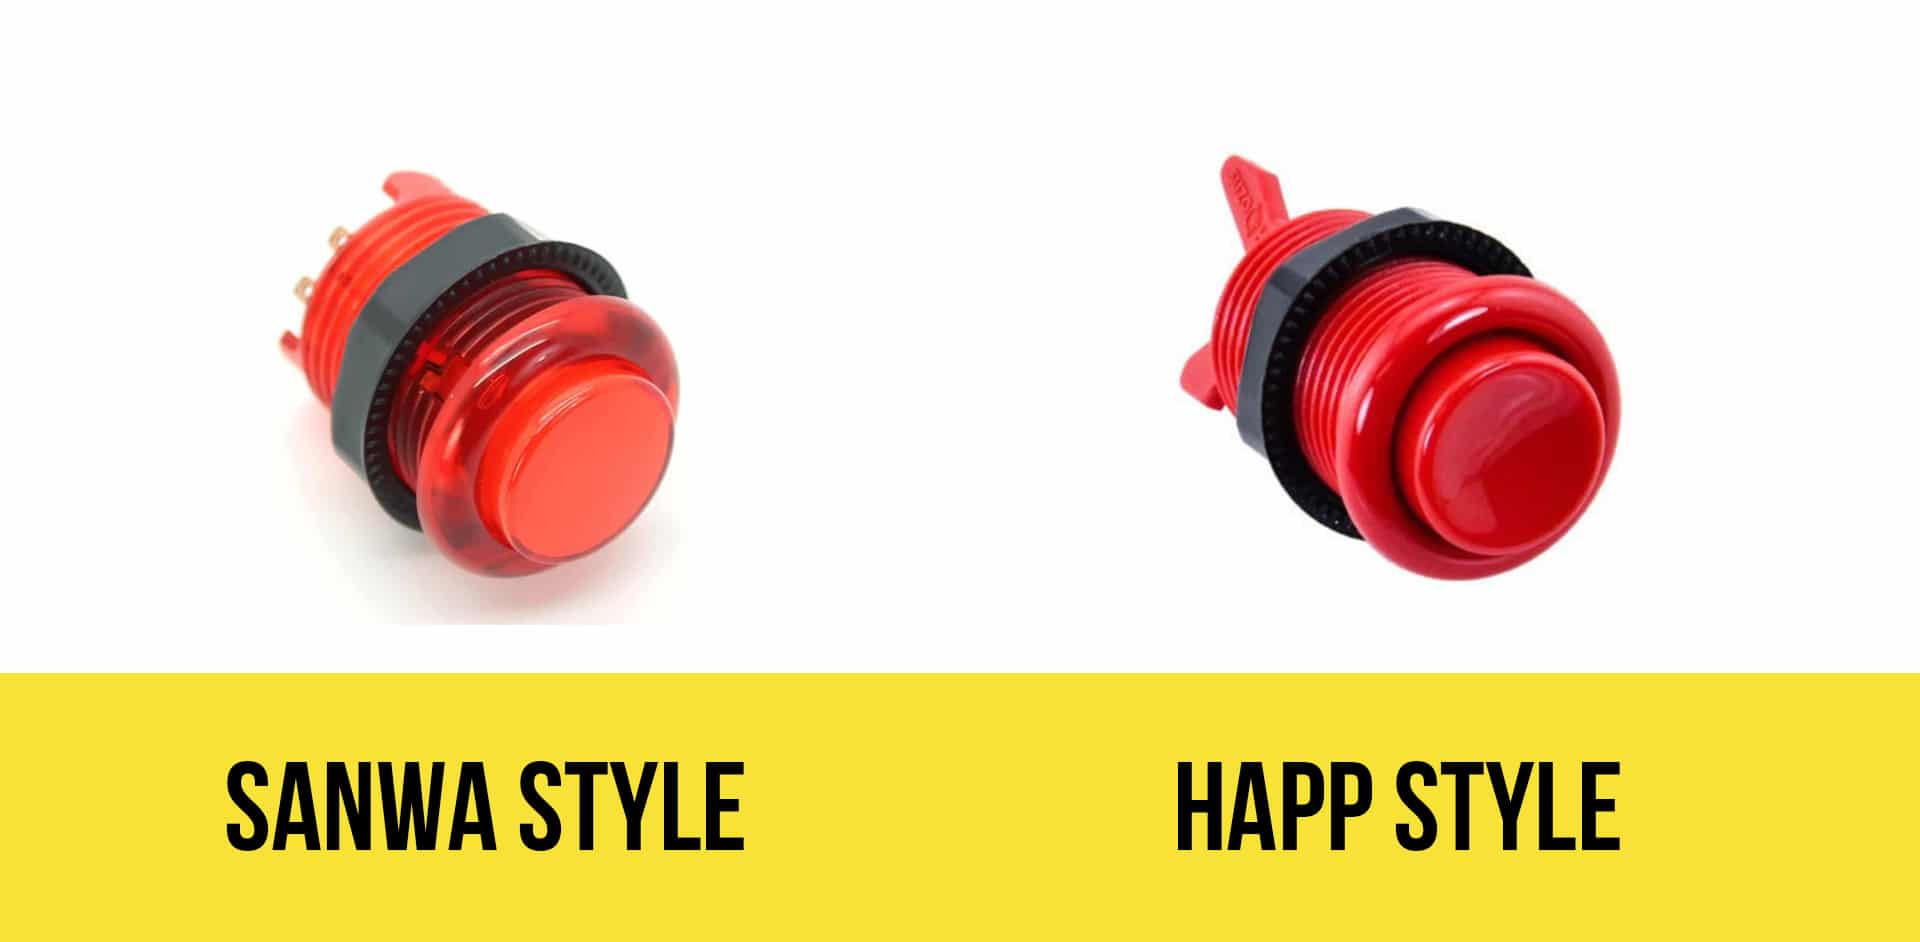 Sanwa vs Happ Buttons: The Best Joystick and Buttons